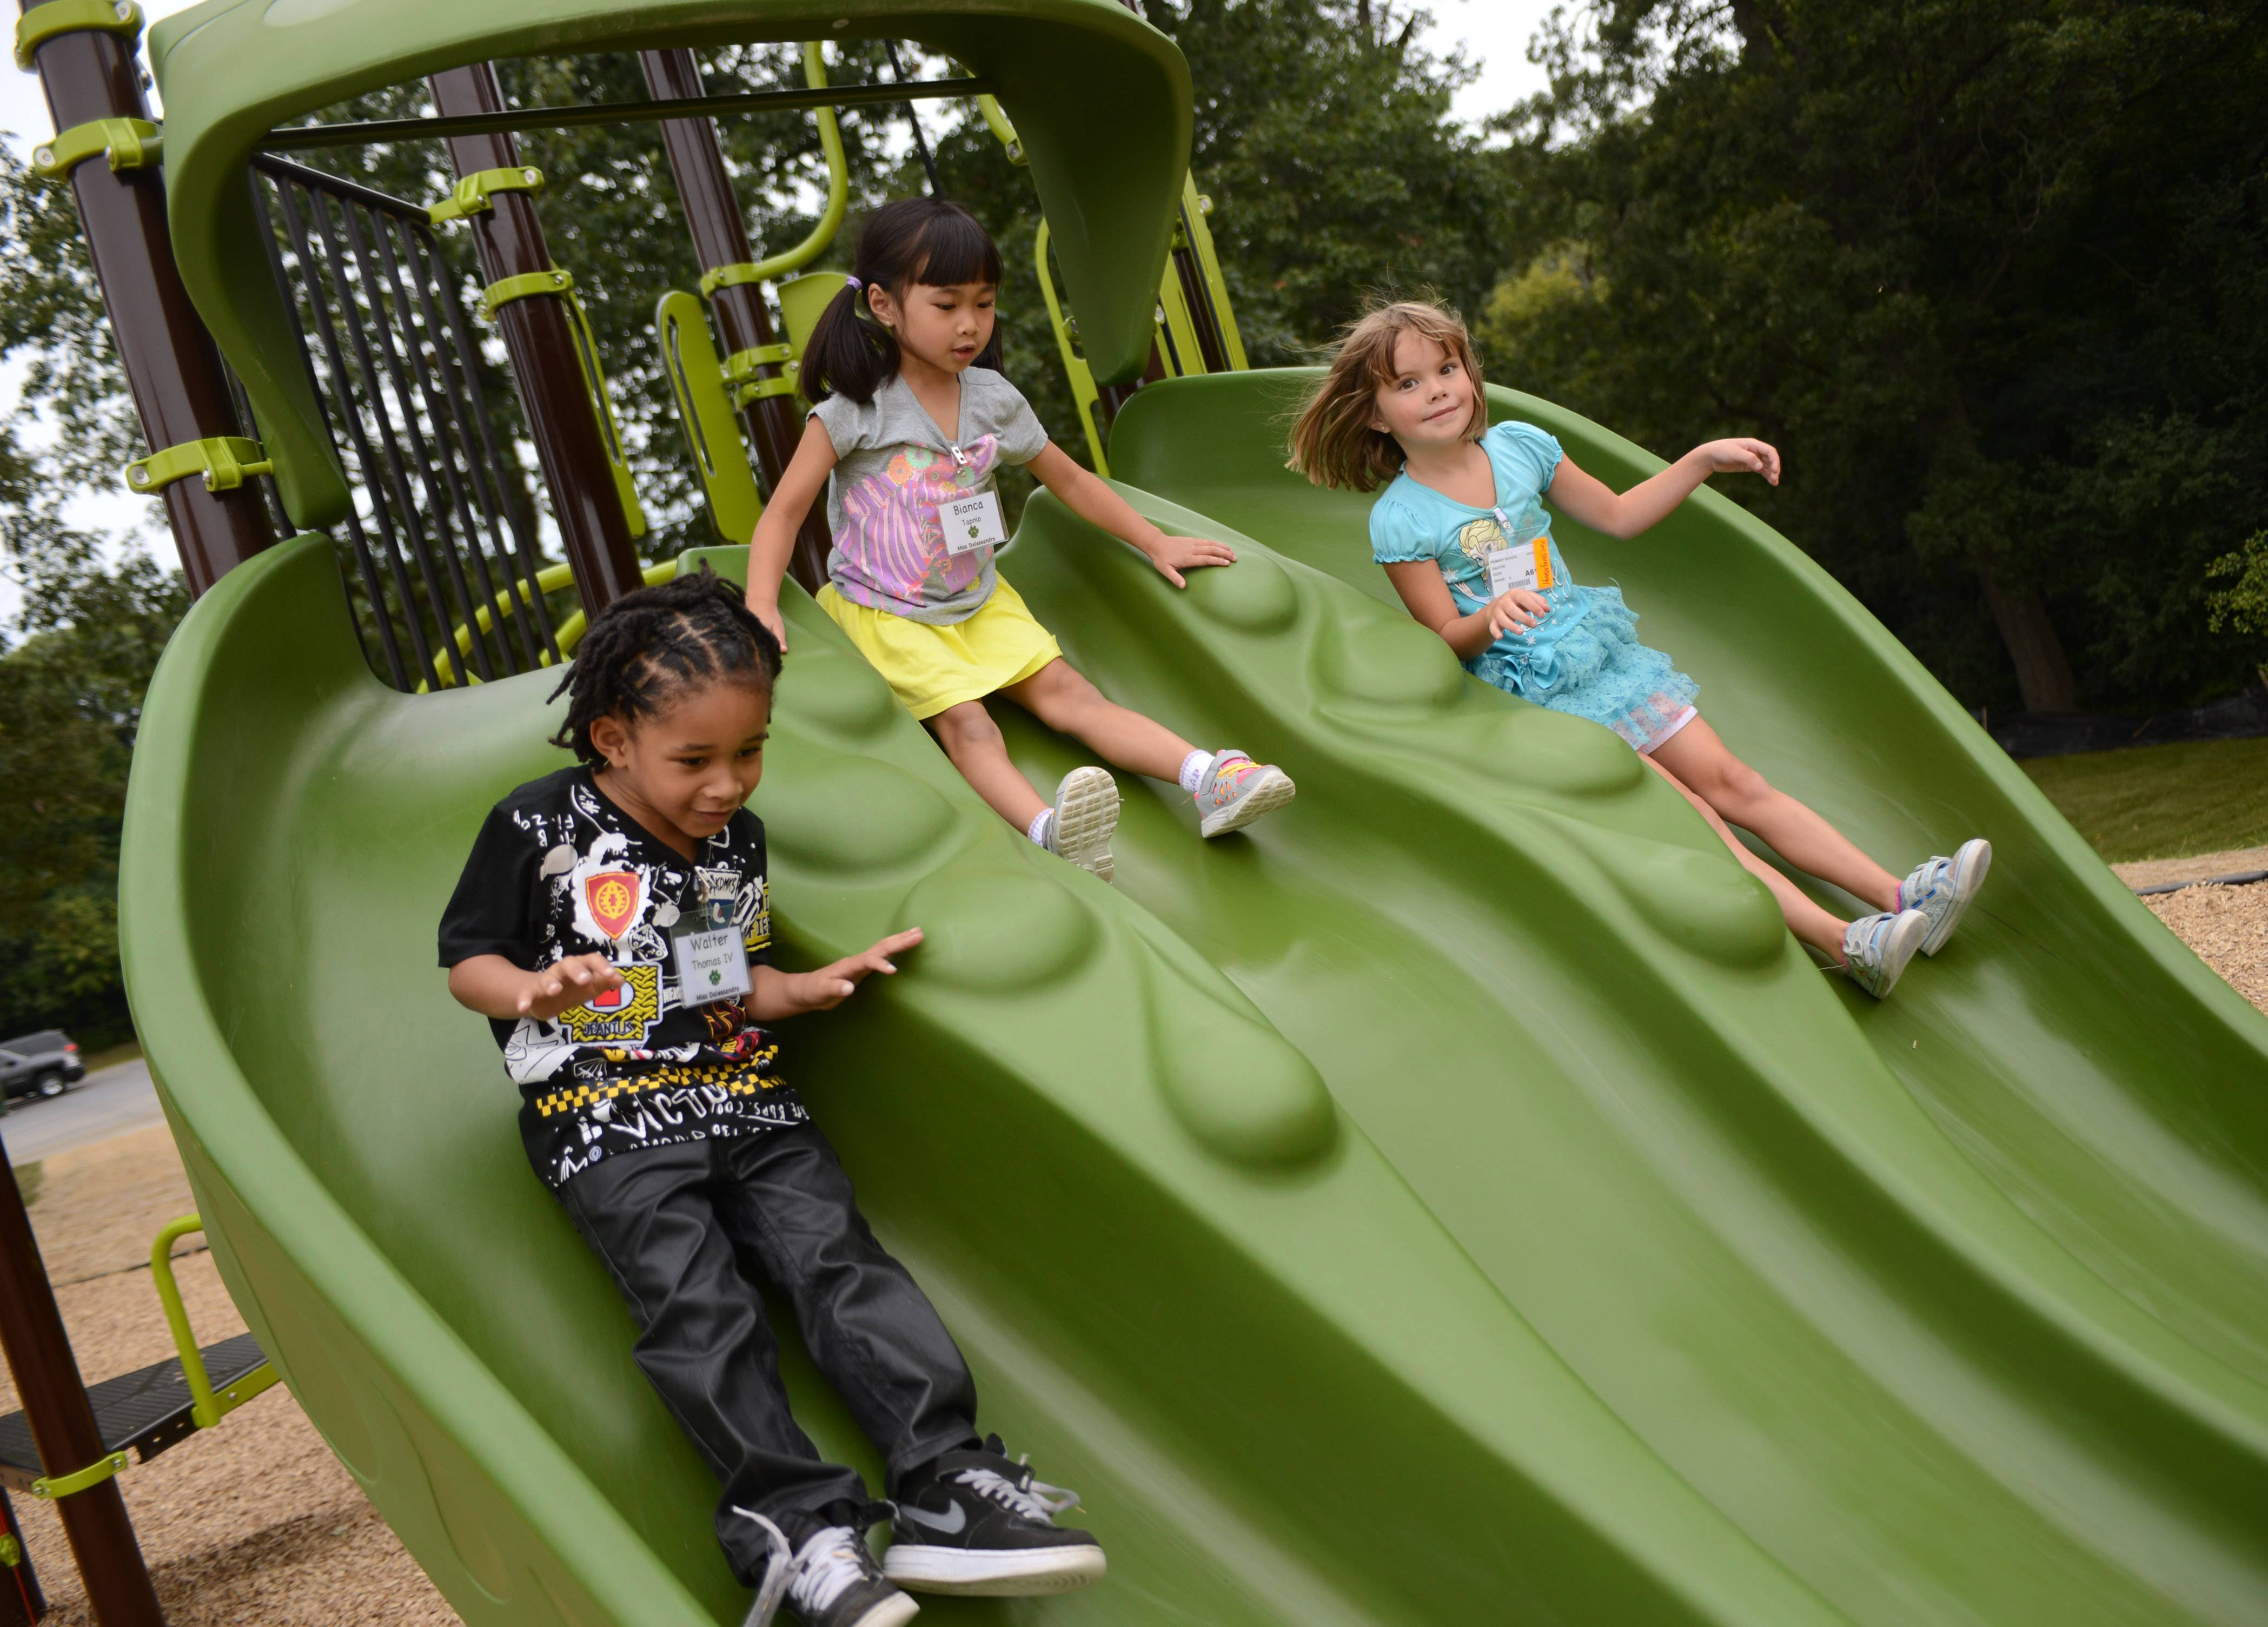 Woodland Primary School kindergarten students Walter Thomas, left, Bianca Tapnio and Hope Gaston play on the school's new playground Friday during recess in Gages Lake.